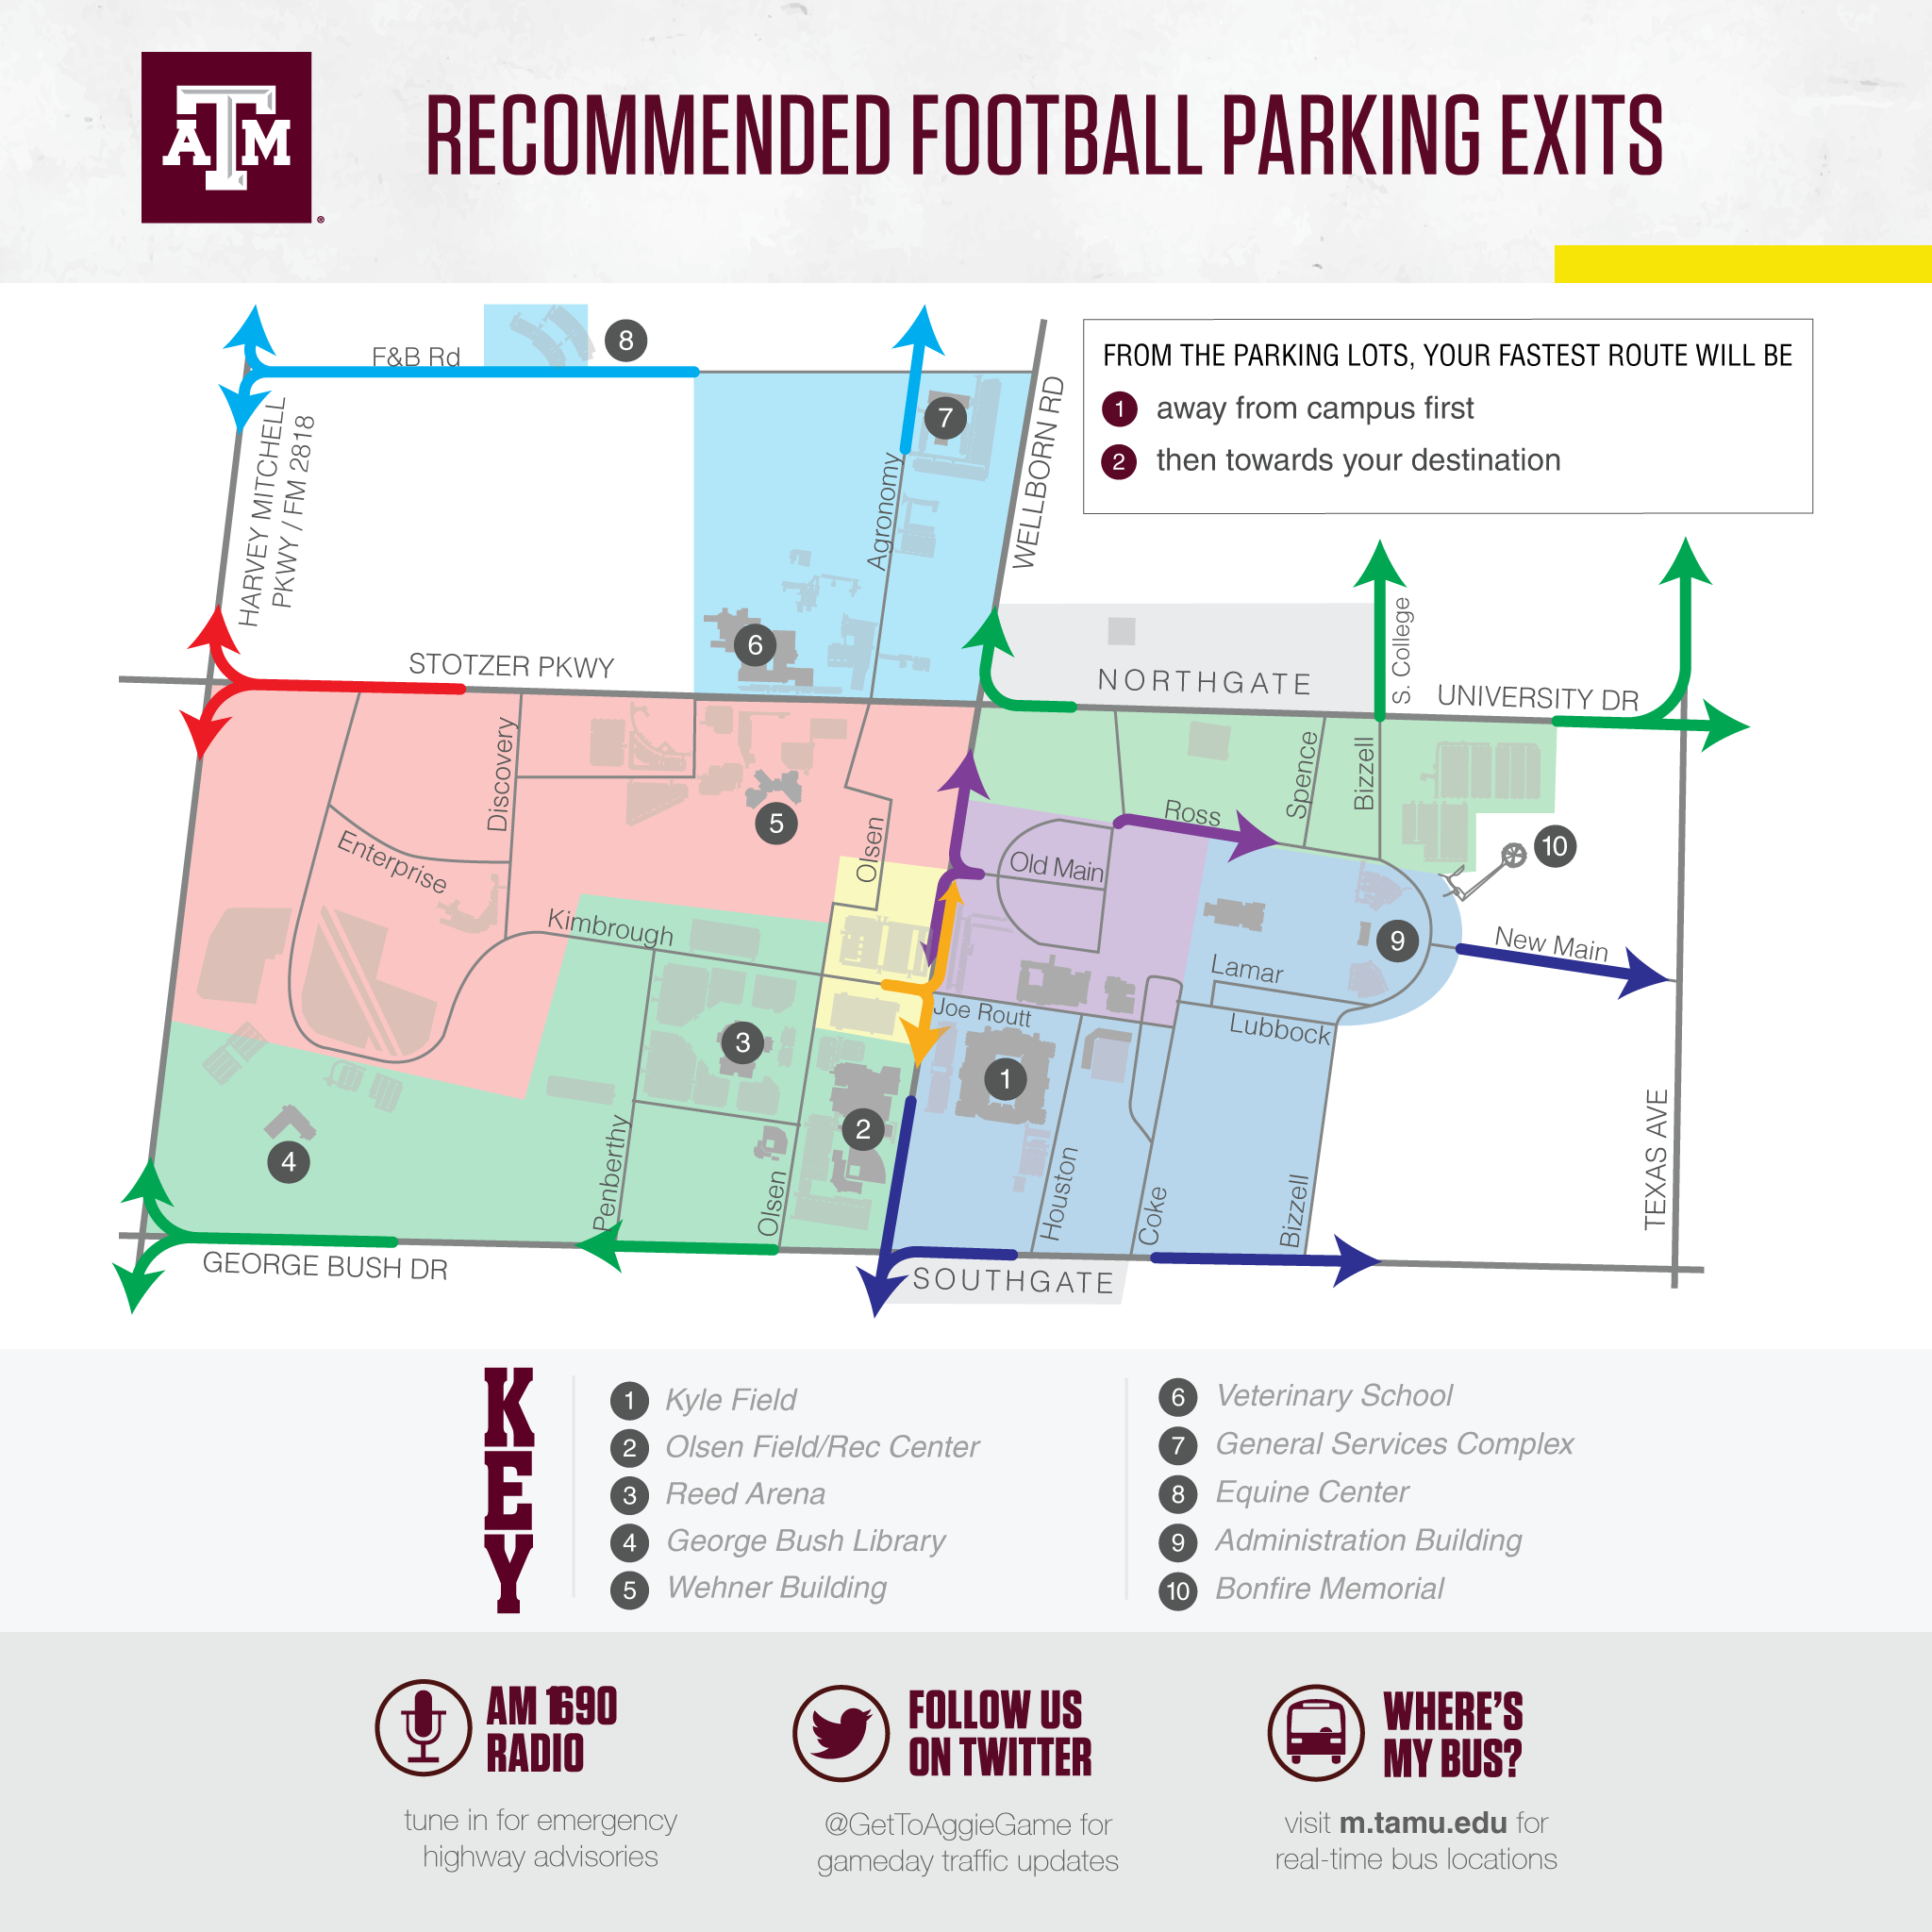 Texas A&m Football Game Day Guide 2017 - Texas A&m Football Parking Map